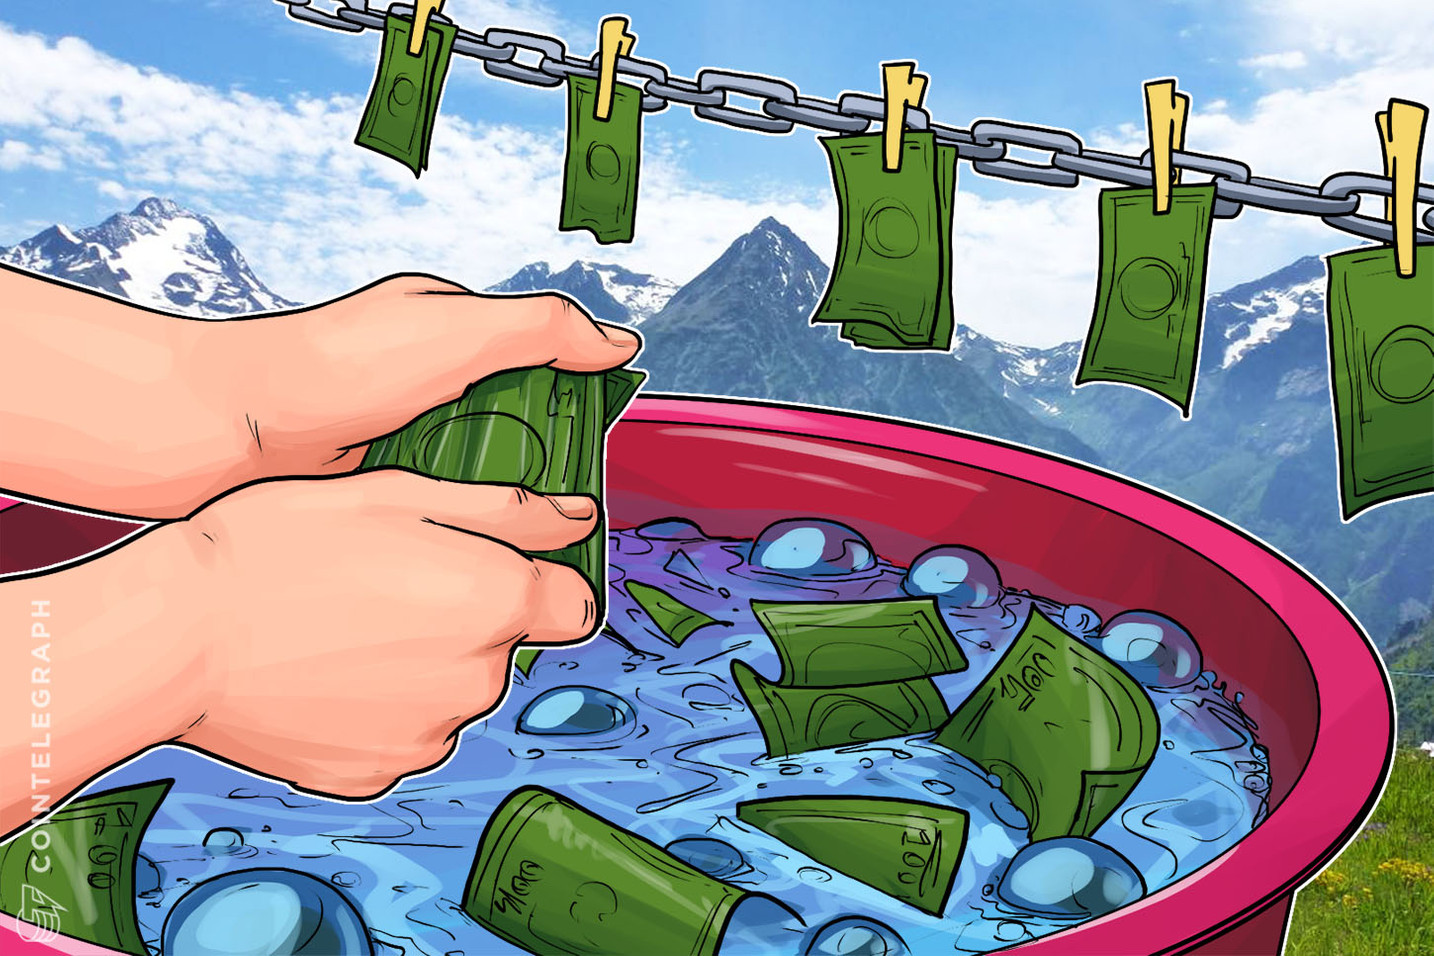 Auditor KPMG Says Regulators Need 'Up-to-Date' Standards for Money Laundering in Crypto